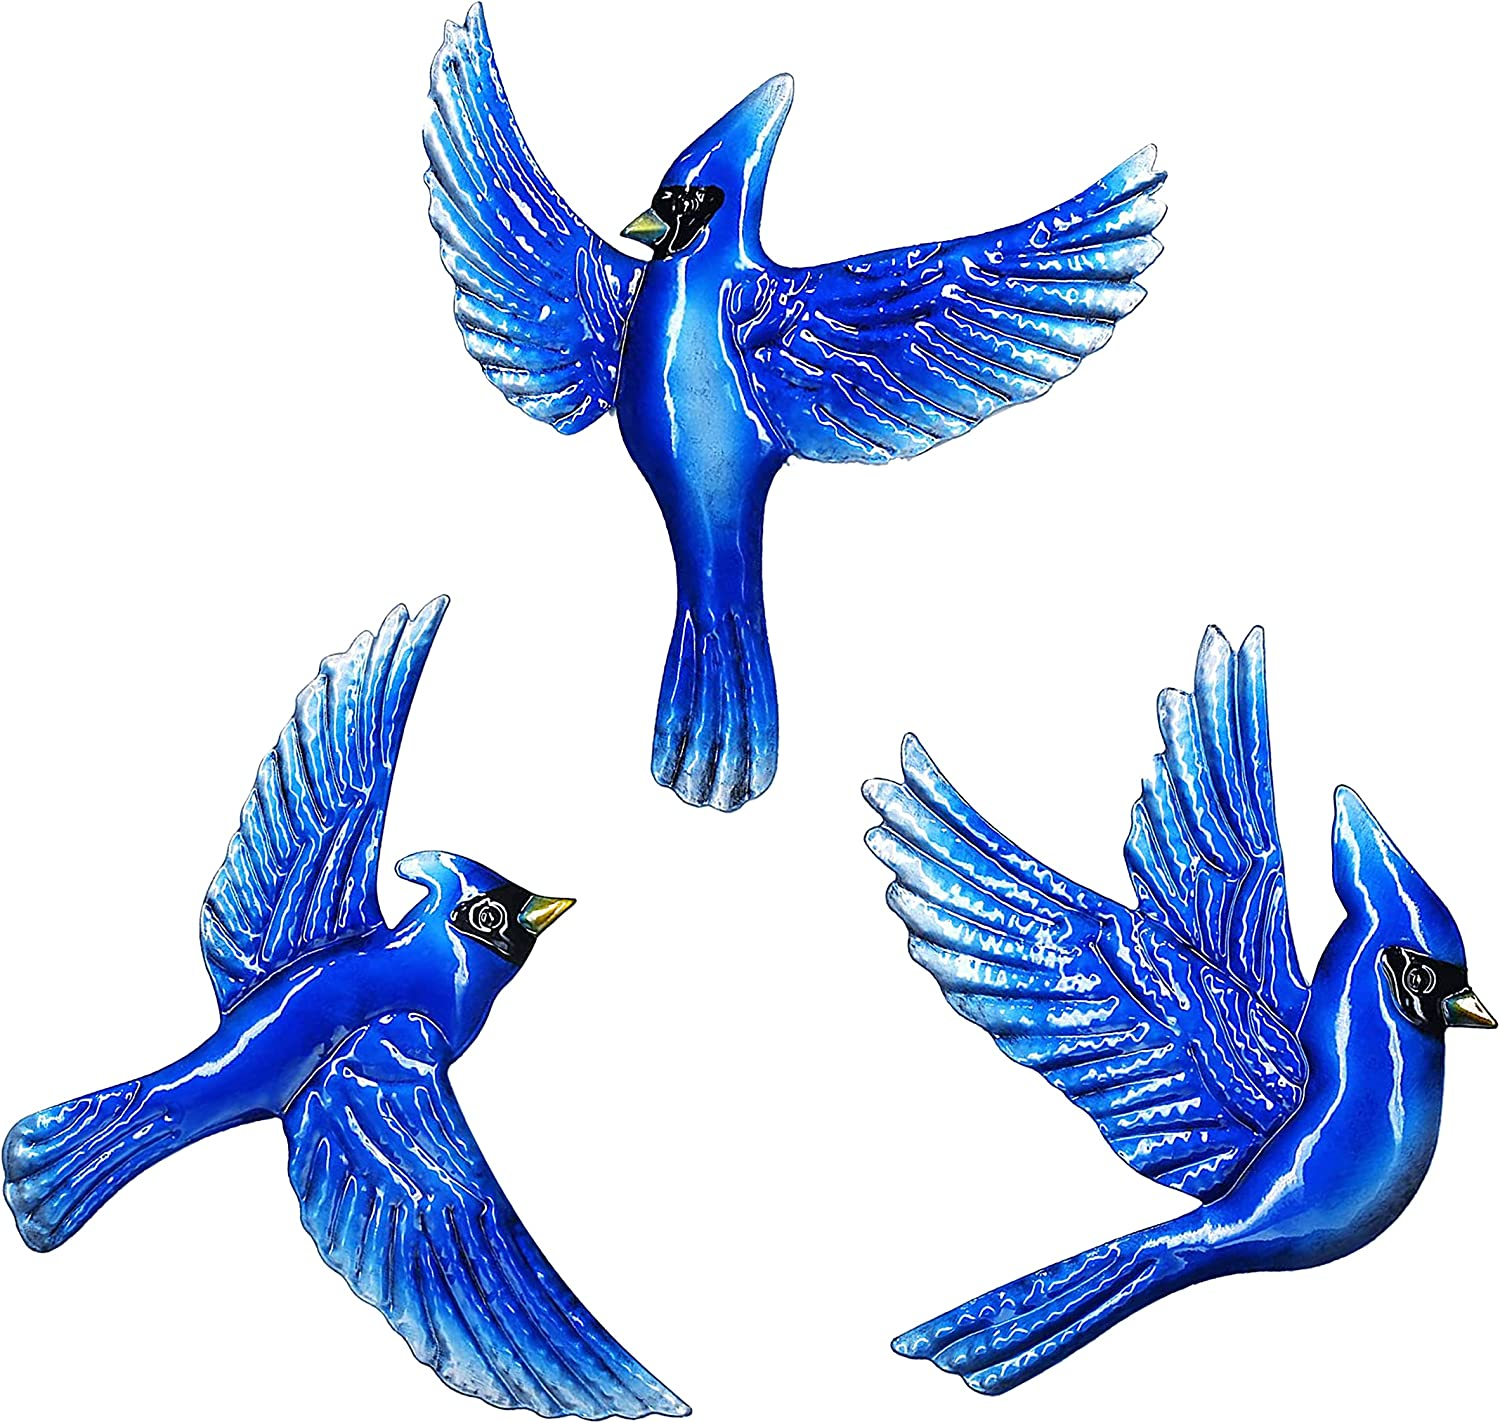 J-Fly Blue Bird Wall Decor, 9inch Large 3pack Metal Wall Decoration, Wall Sculpture For Living Room Bedroom Kitchen Bathroom Farmhouse, Christmas Ornaments Unique Memorial Gifts For Mom